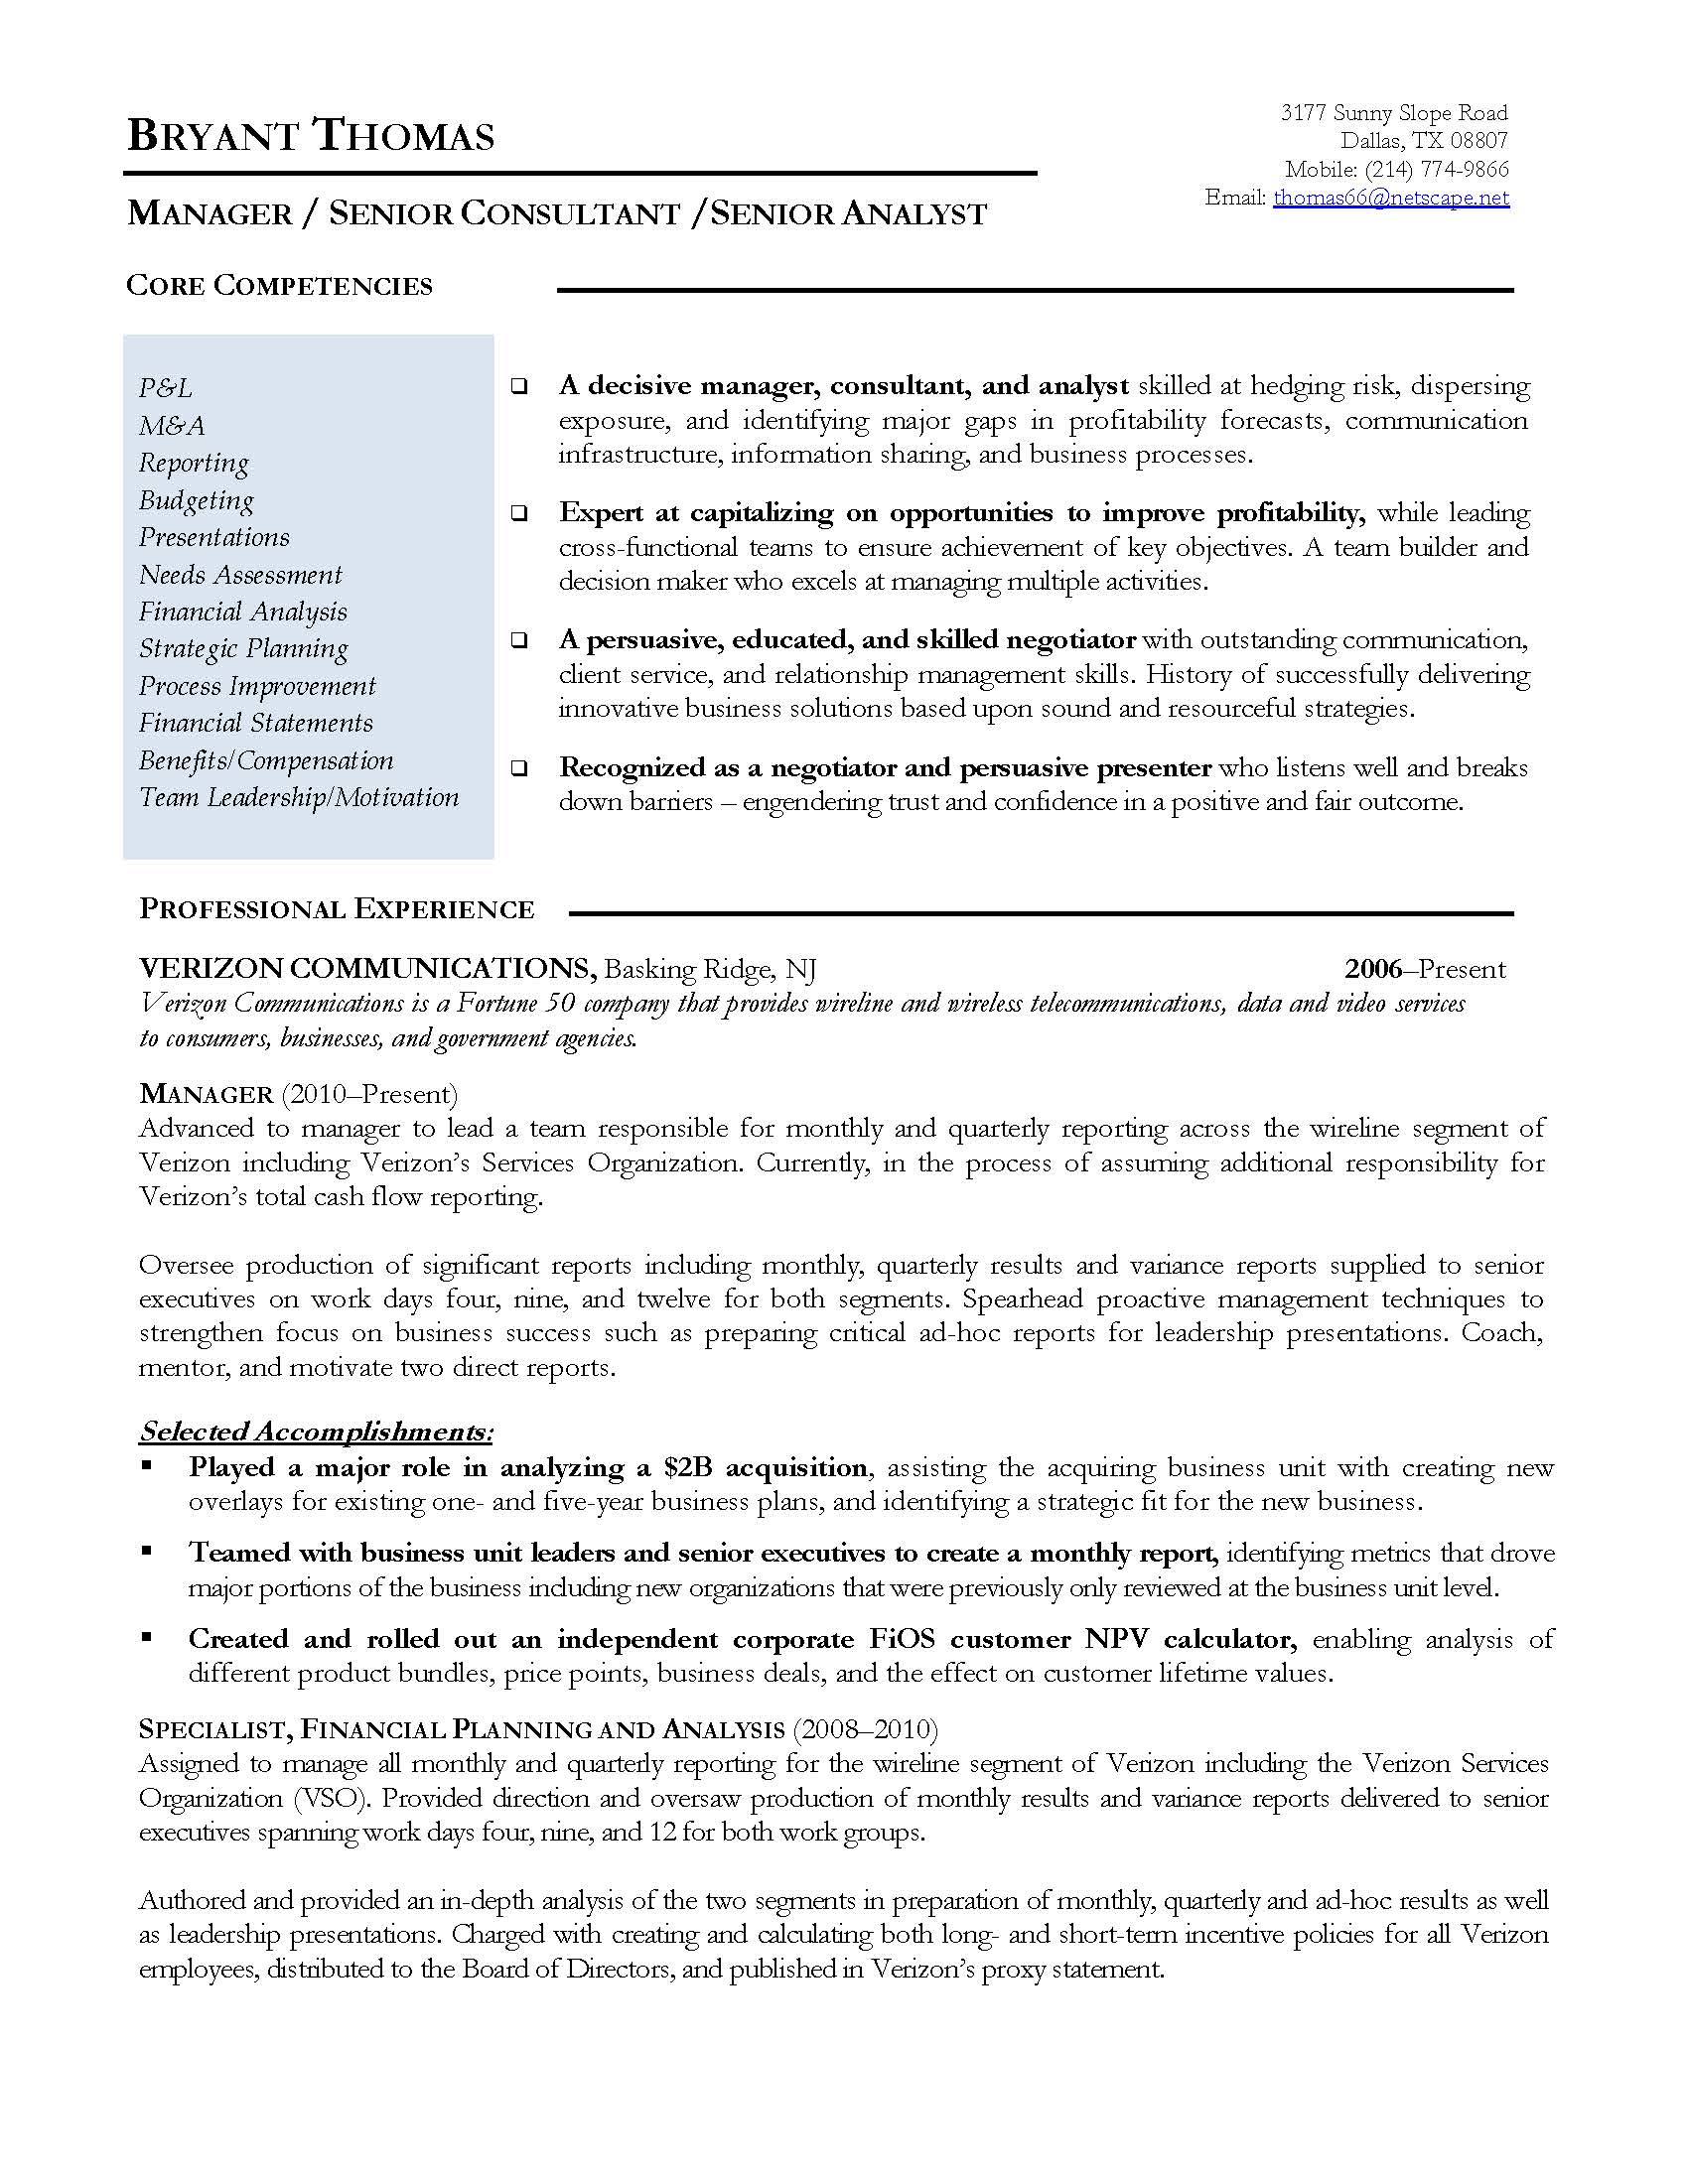 finance manager resume sample provided by elite resume writing services